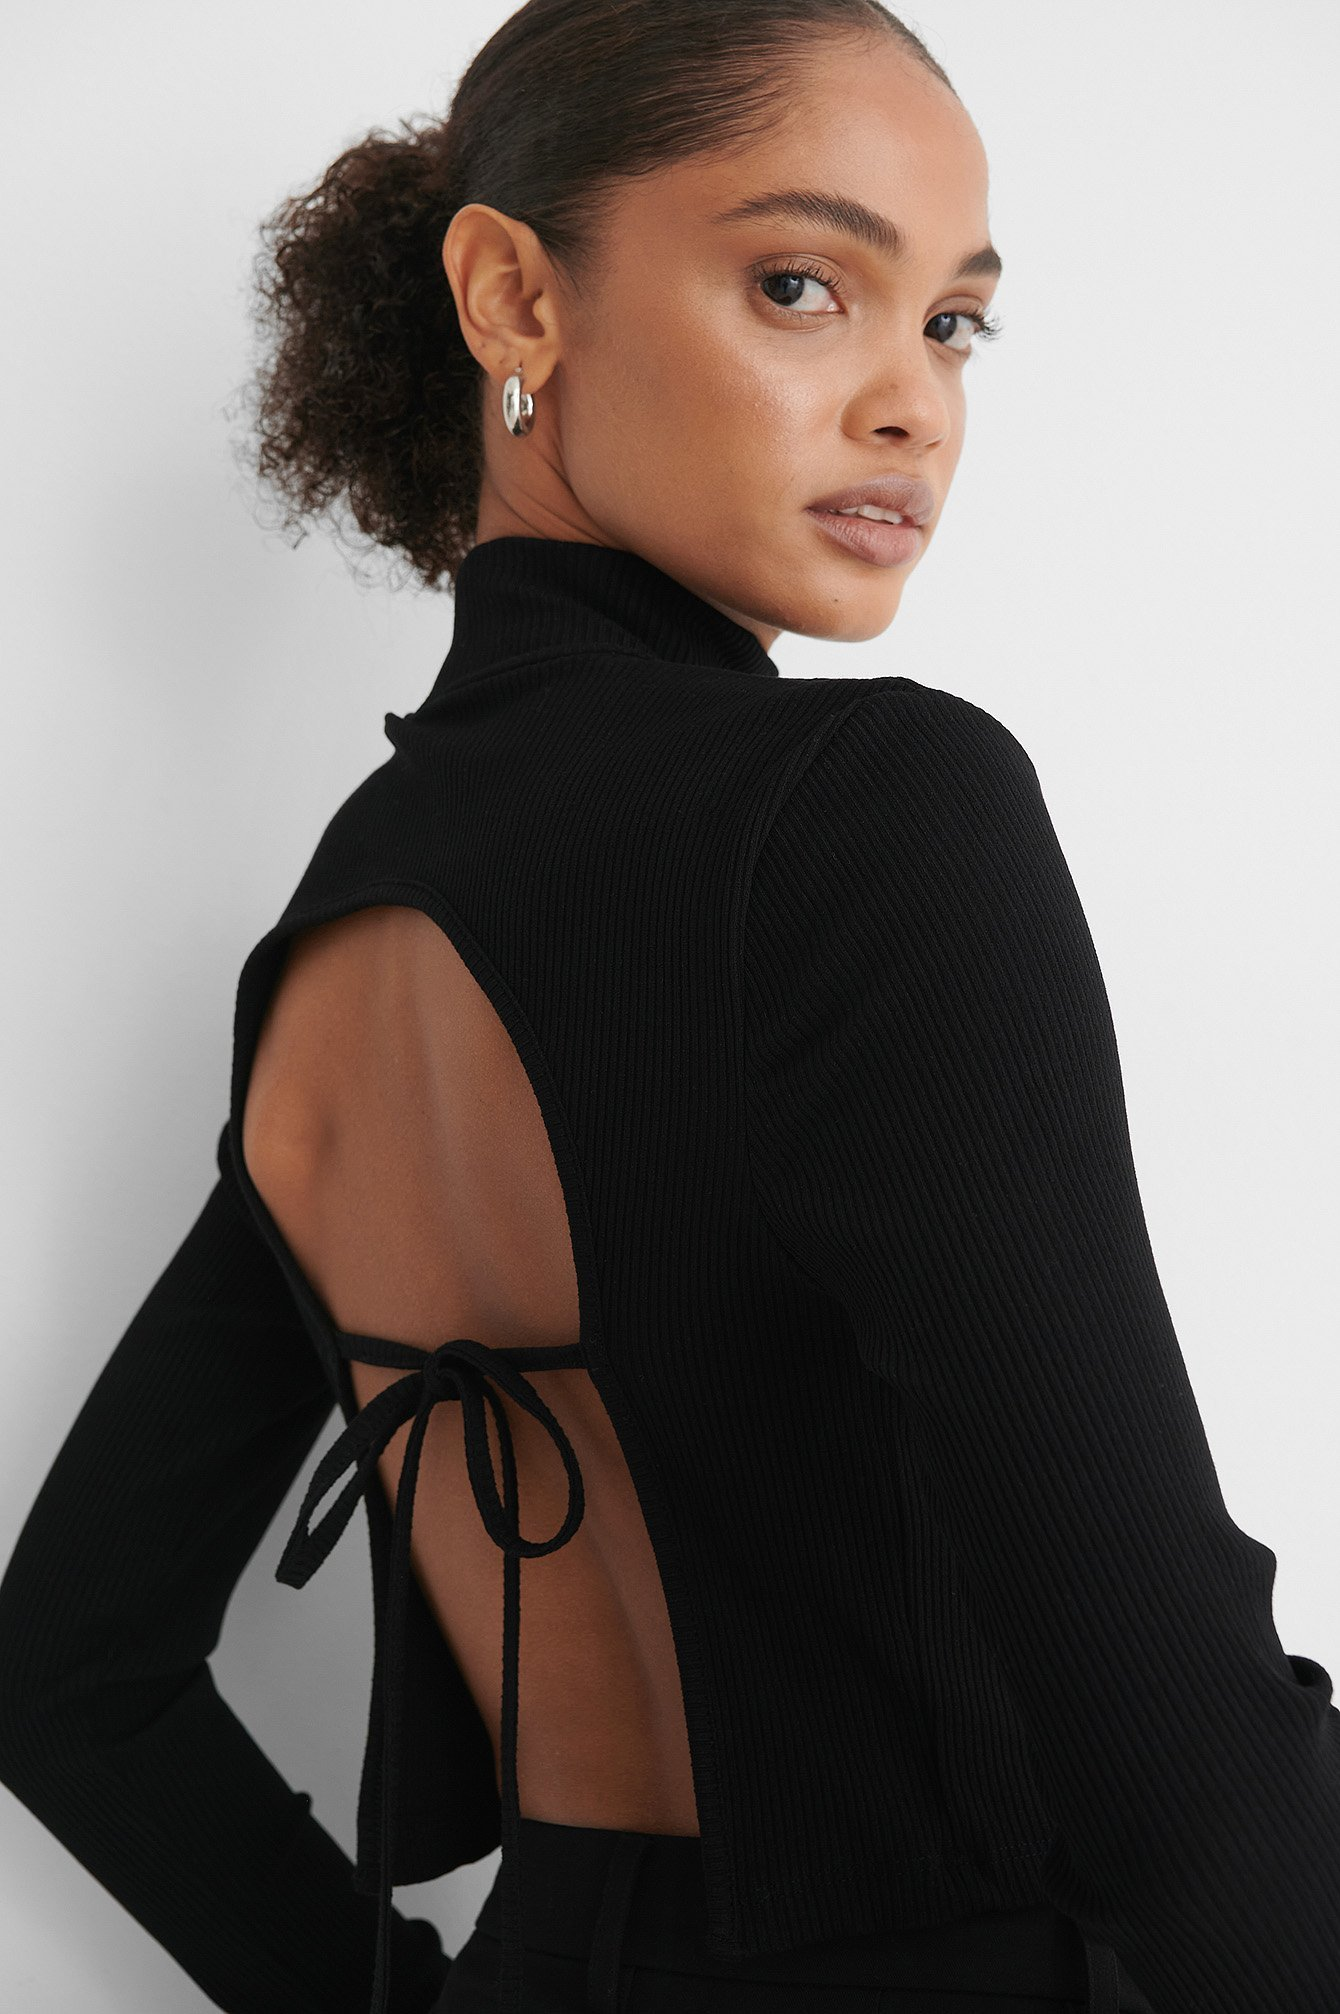 Woman wears Black Open Back top with Knot Detail and looks at camera